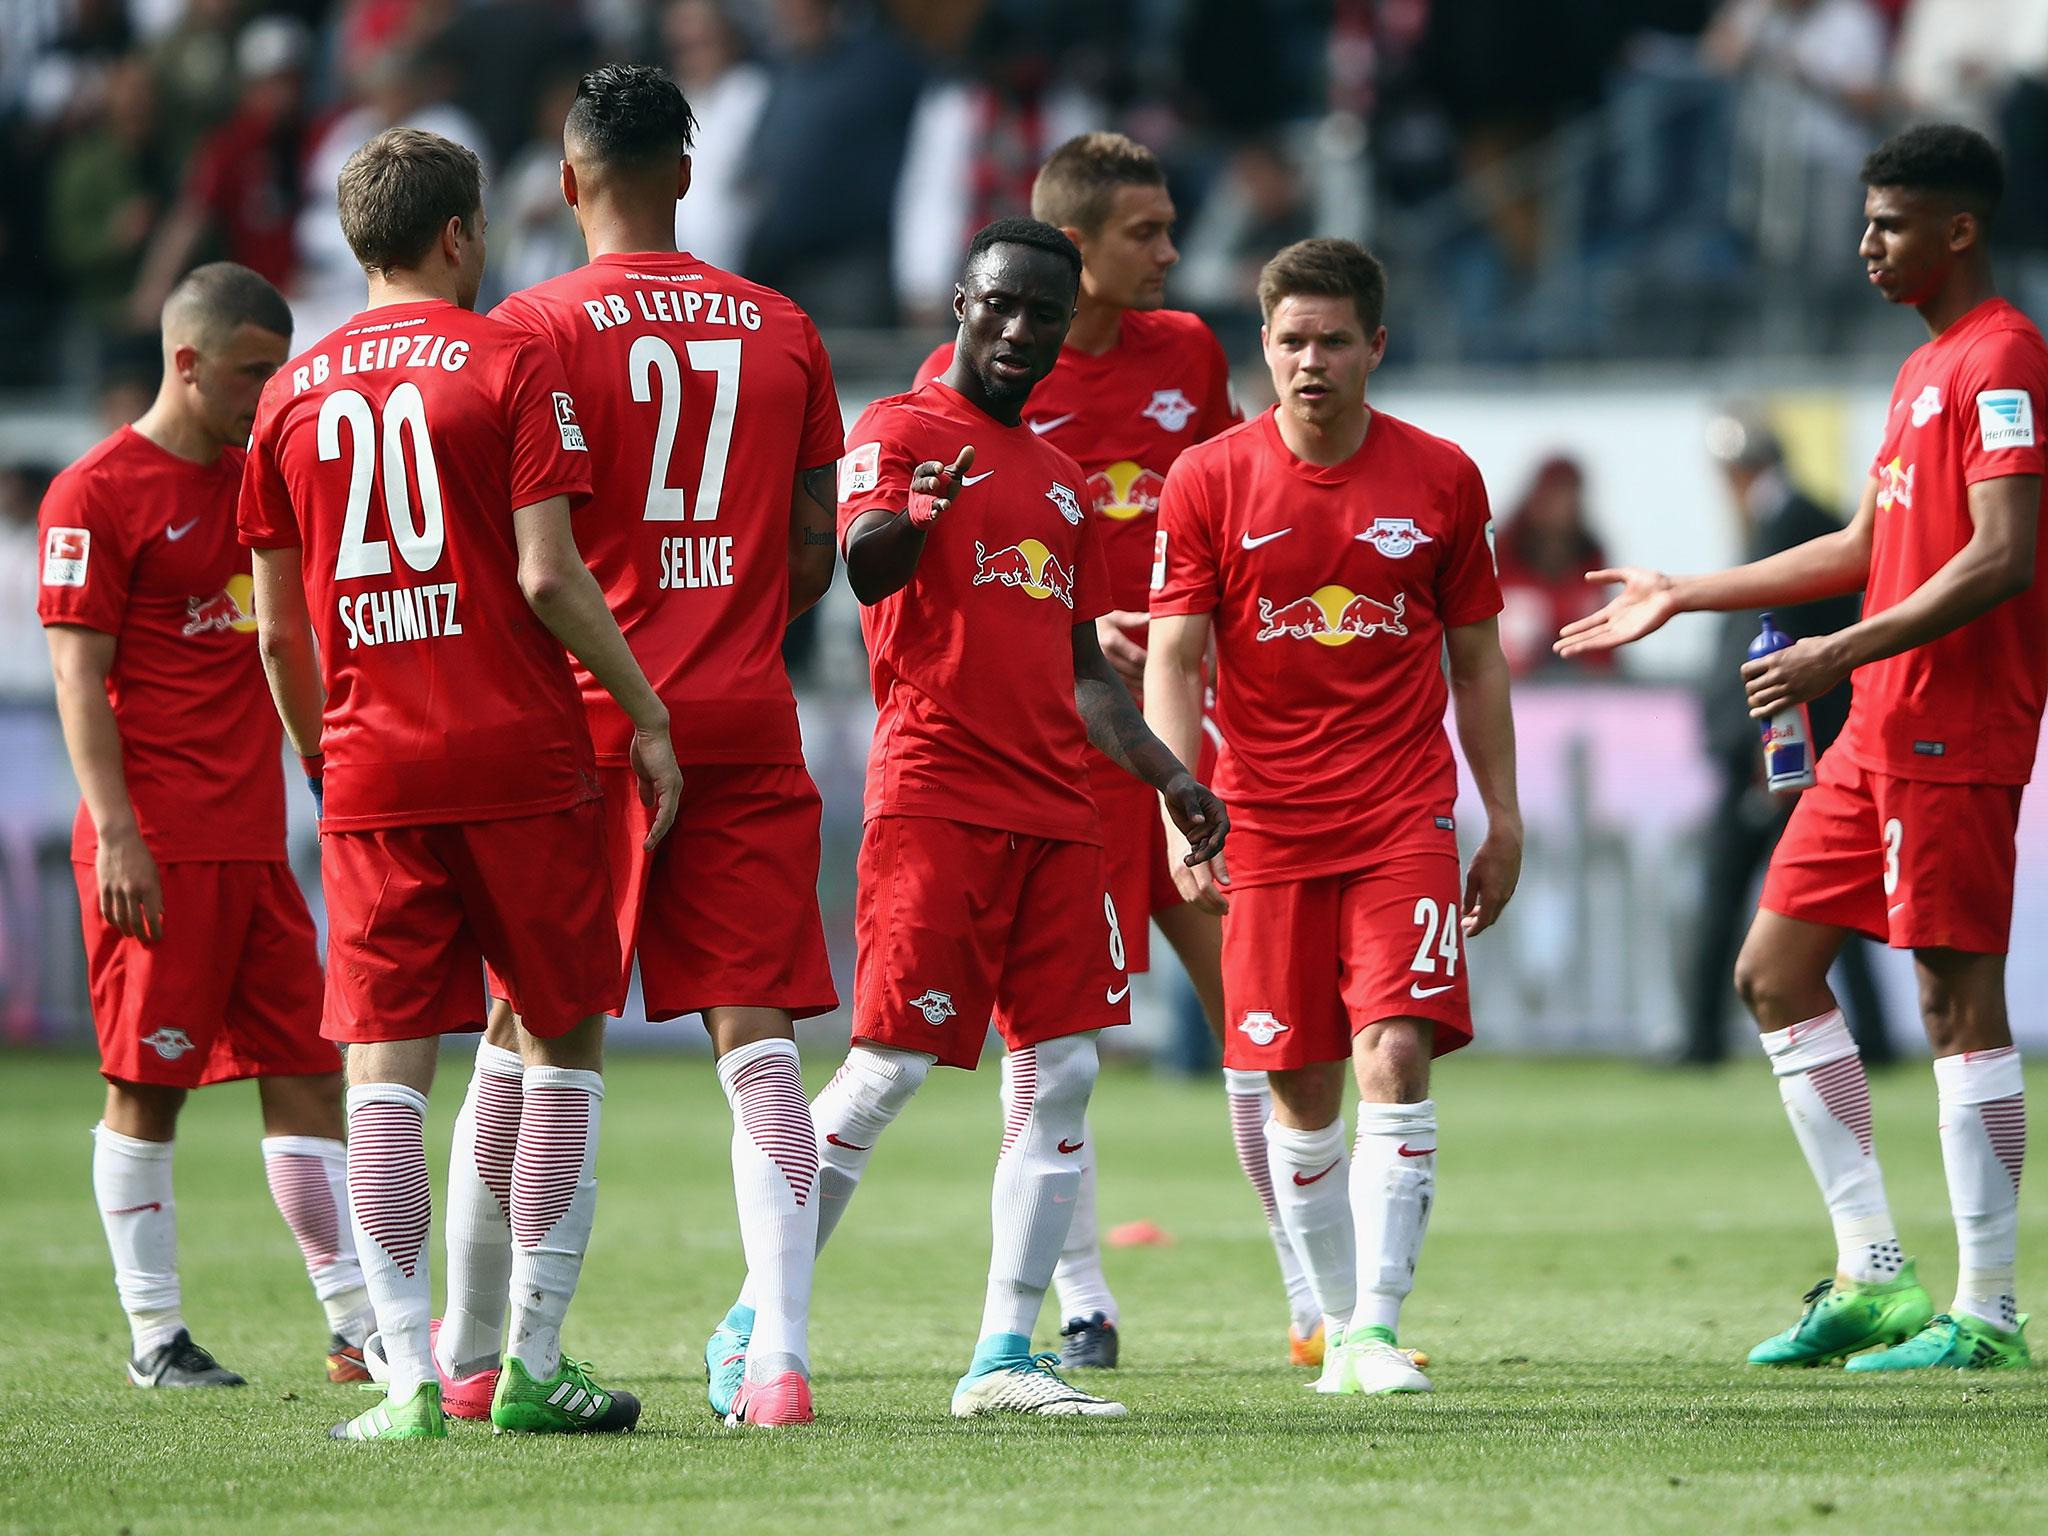 German Clubs Won T Appeal After Uefa Clear Rb Leipzig And Fc Salzburg For Champions League Despite Red Bull Link The Independent The Independent